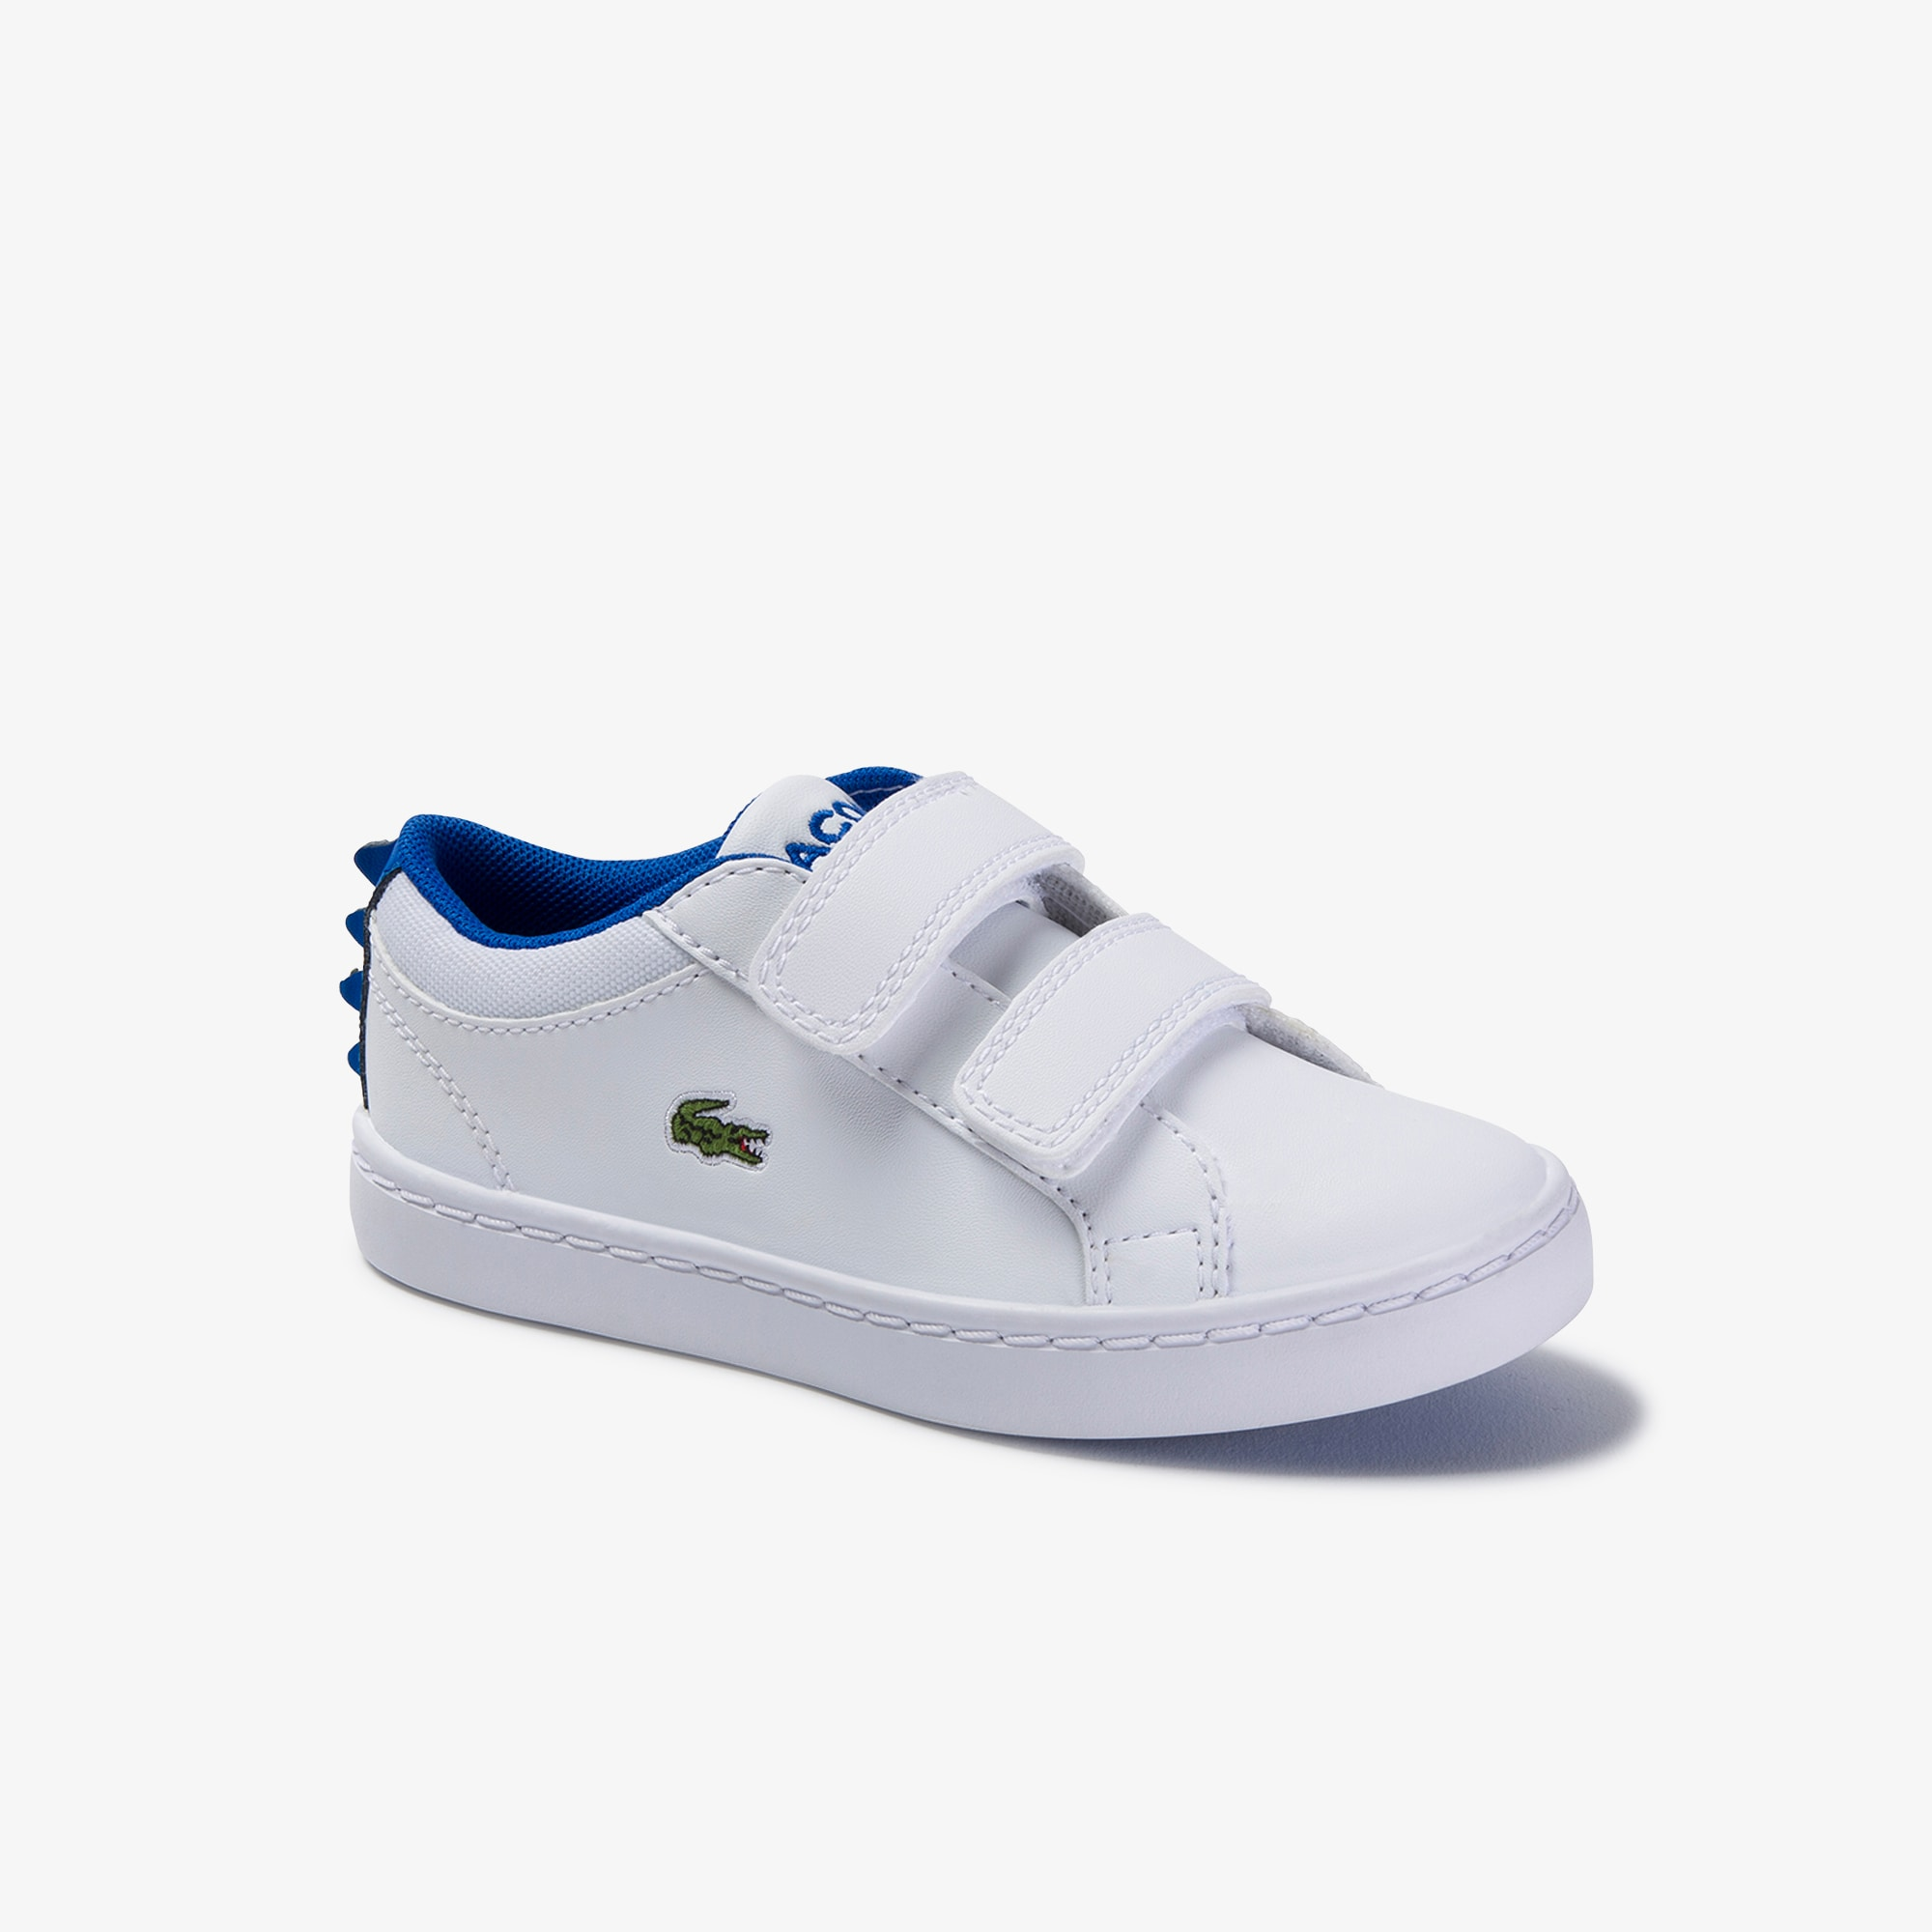 infant white lacoste trainers - 52% OFF